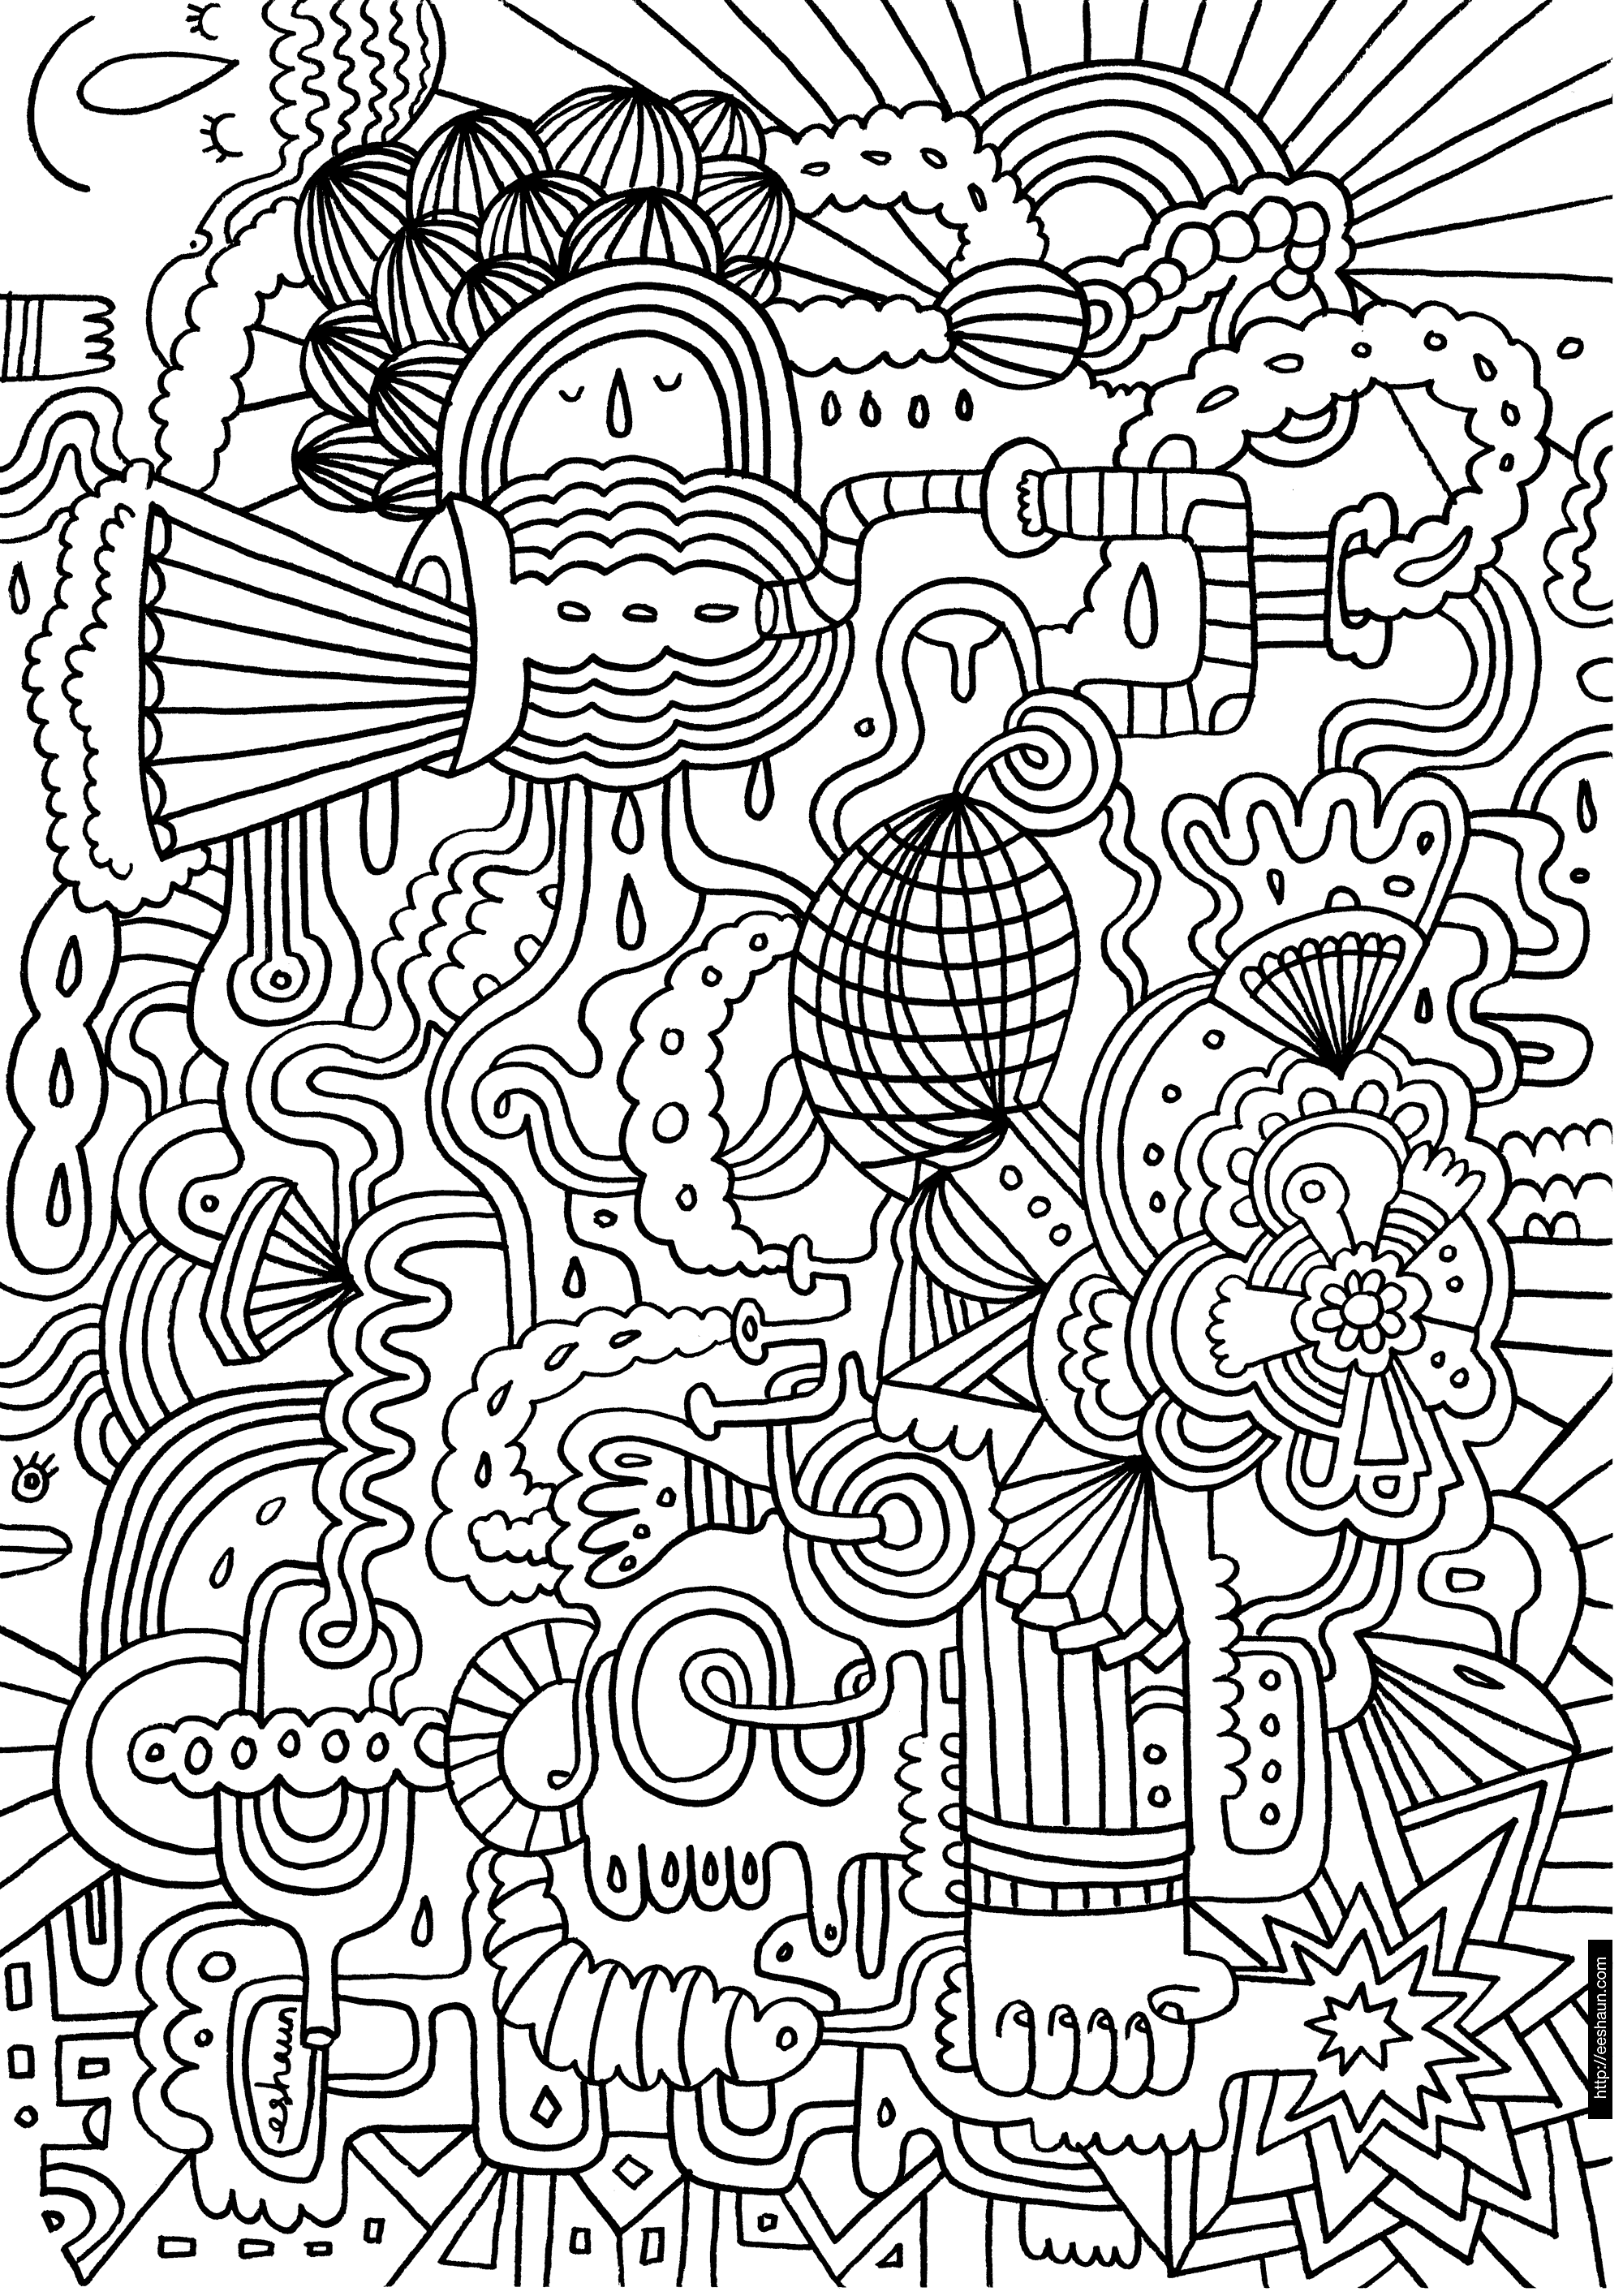 Hard Coloring Pages Abstract Coloring Pages Coloring Pages For